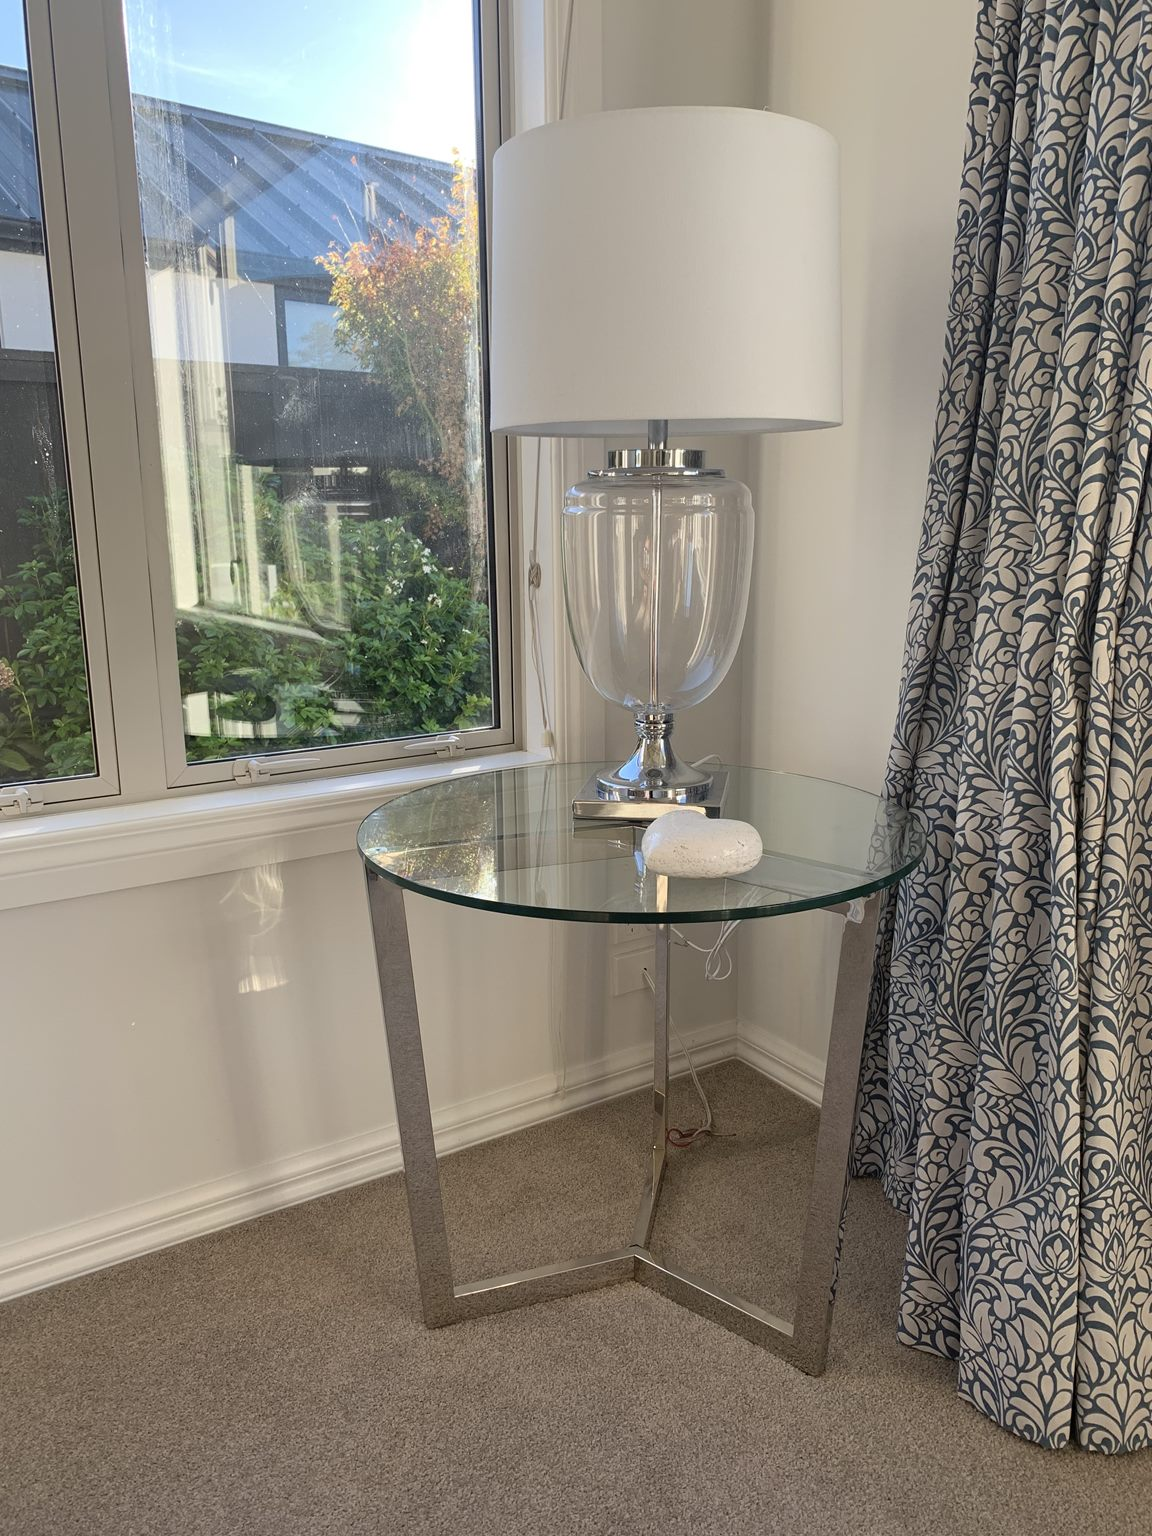 *MG* Stainless steel frame side table #423 see through black in stock